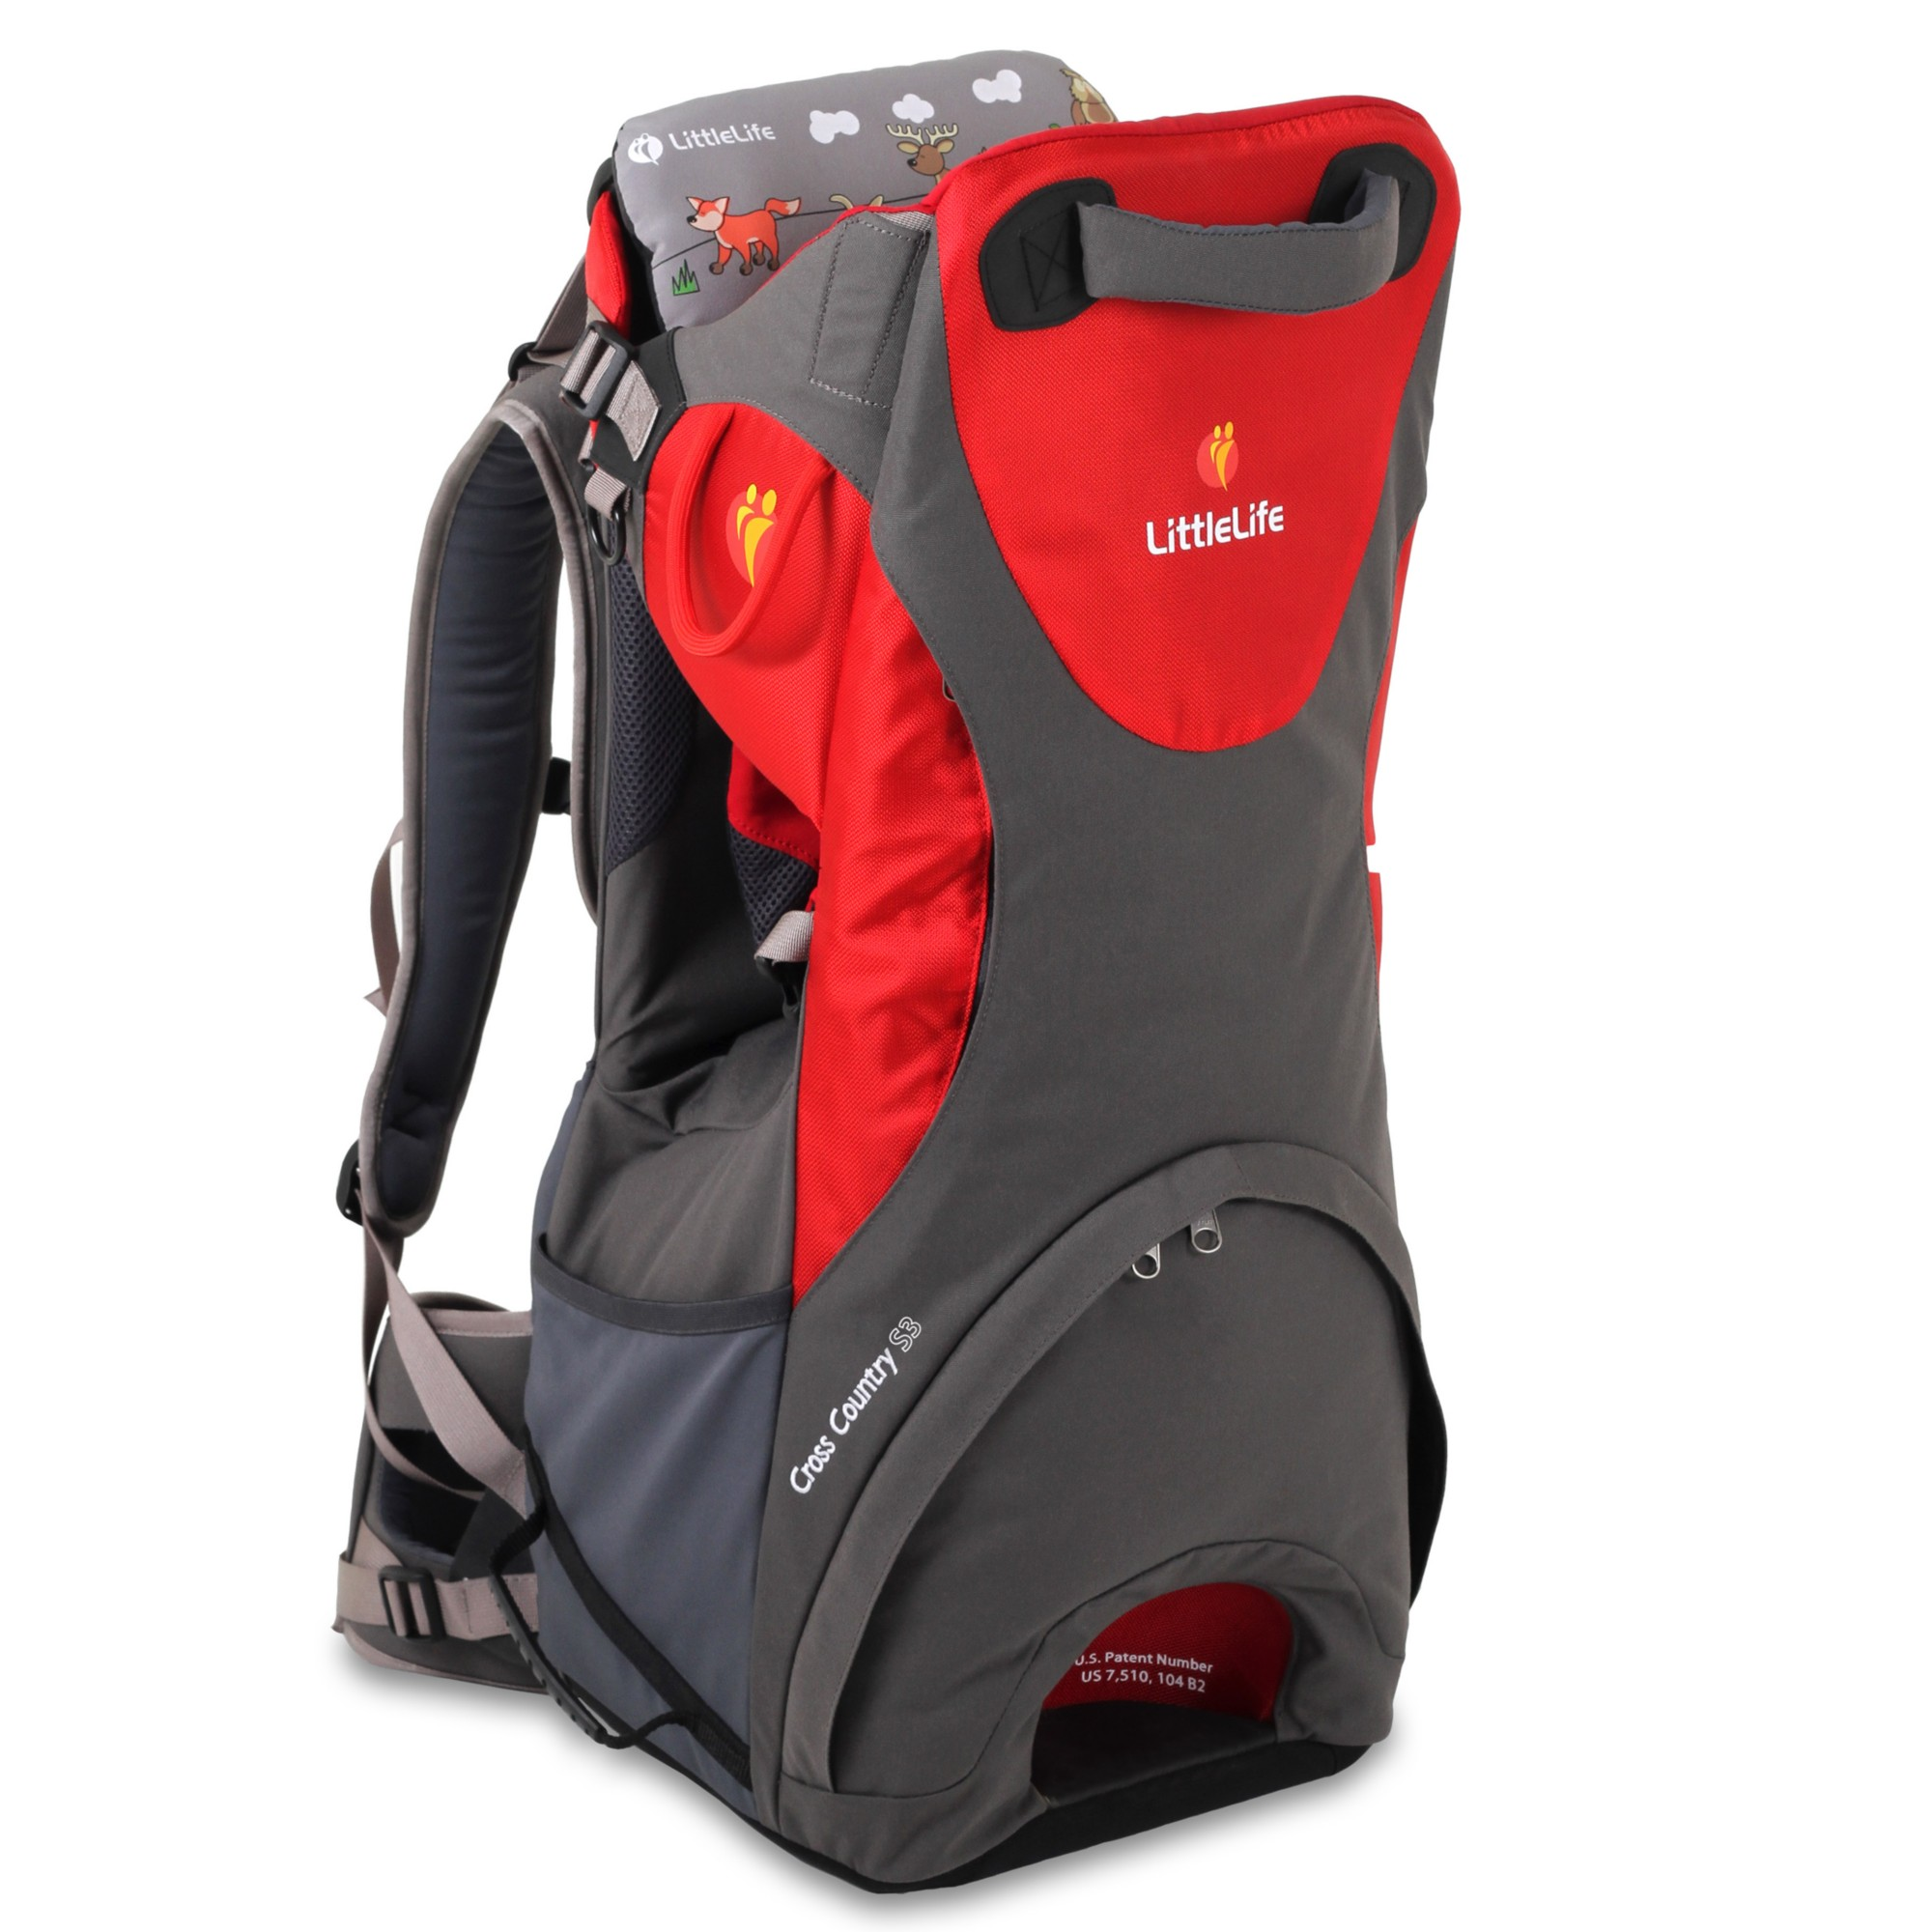 LittleLife Cross Country S3 Baby Back Carrier